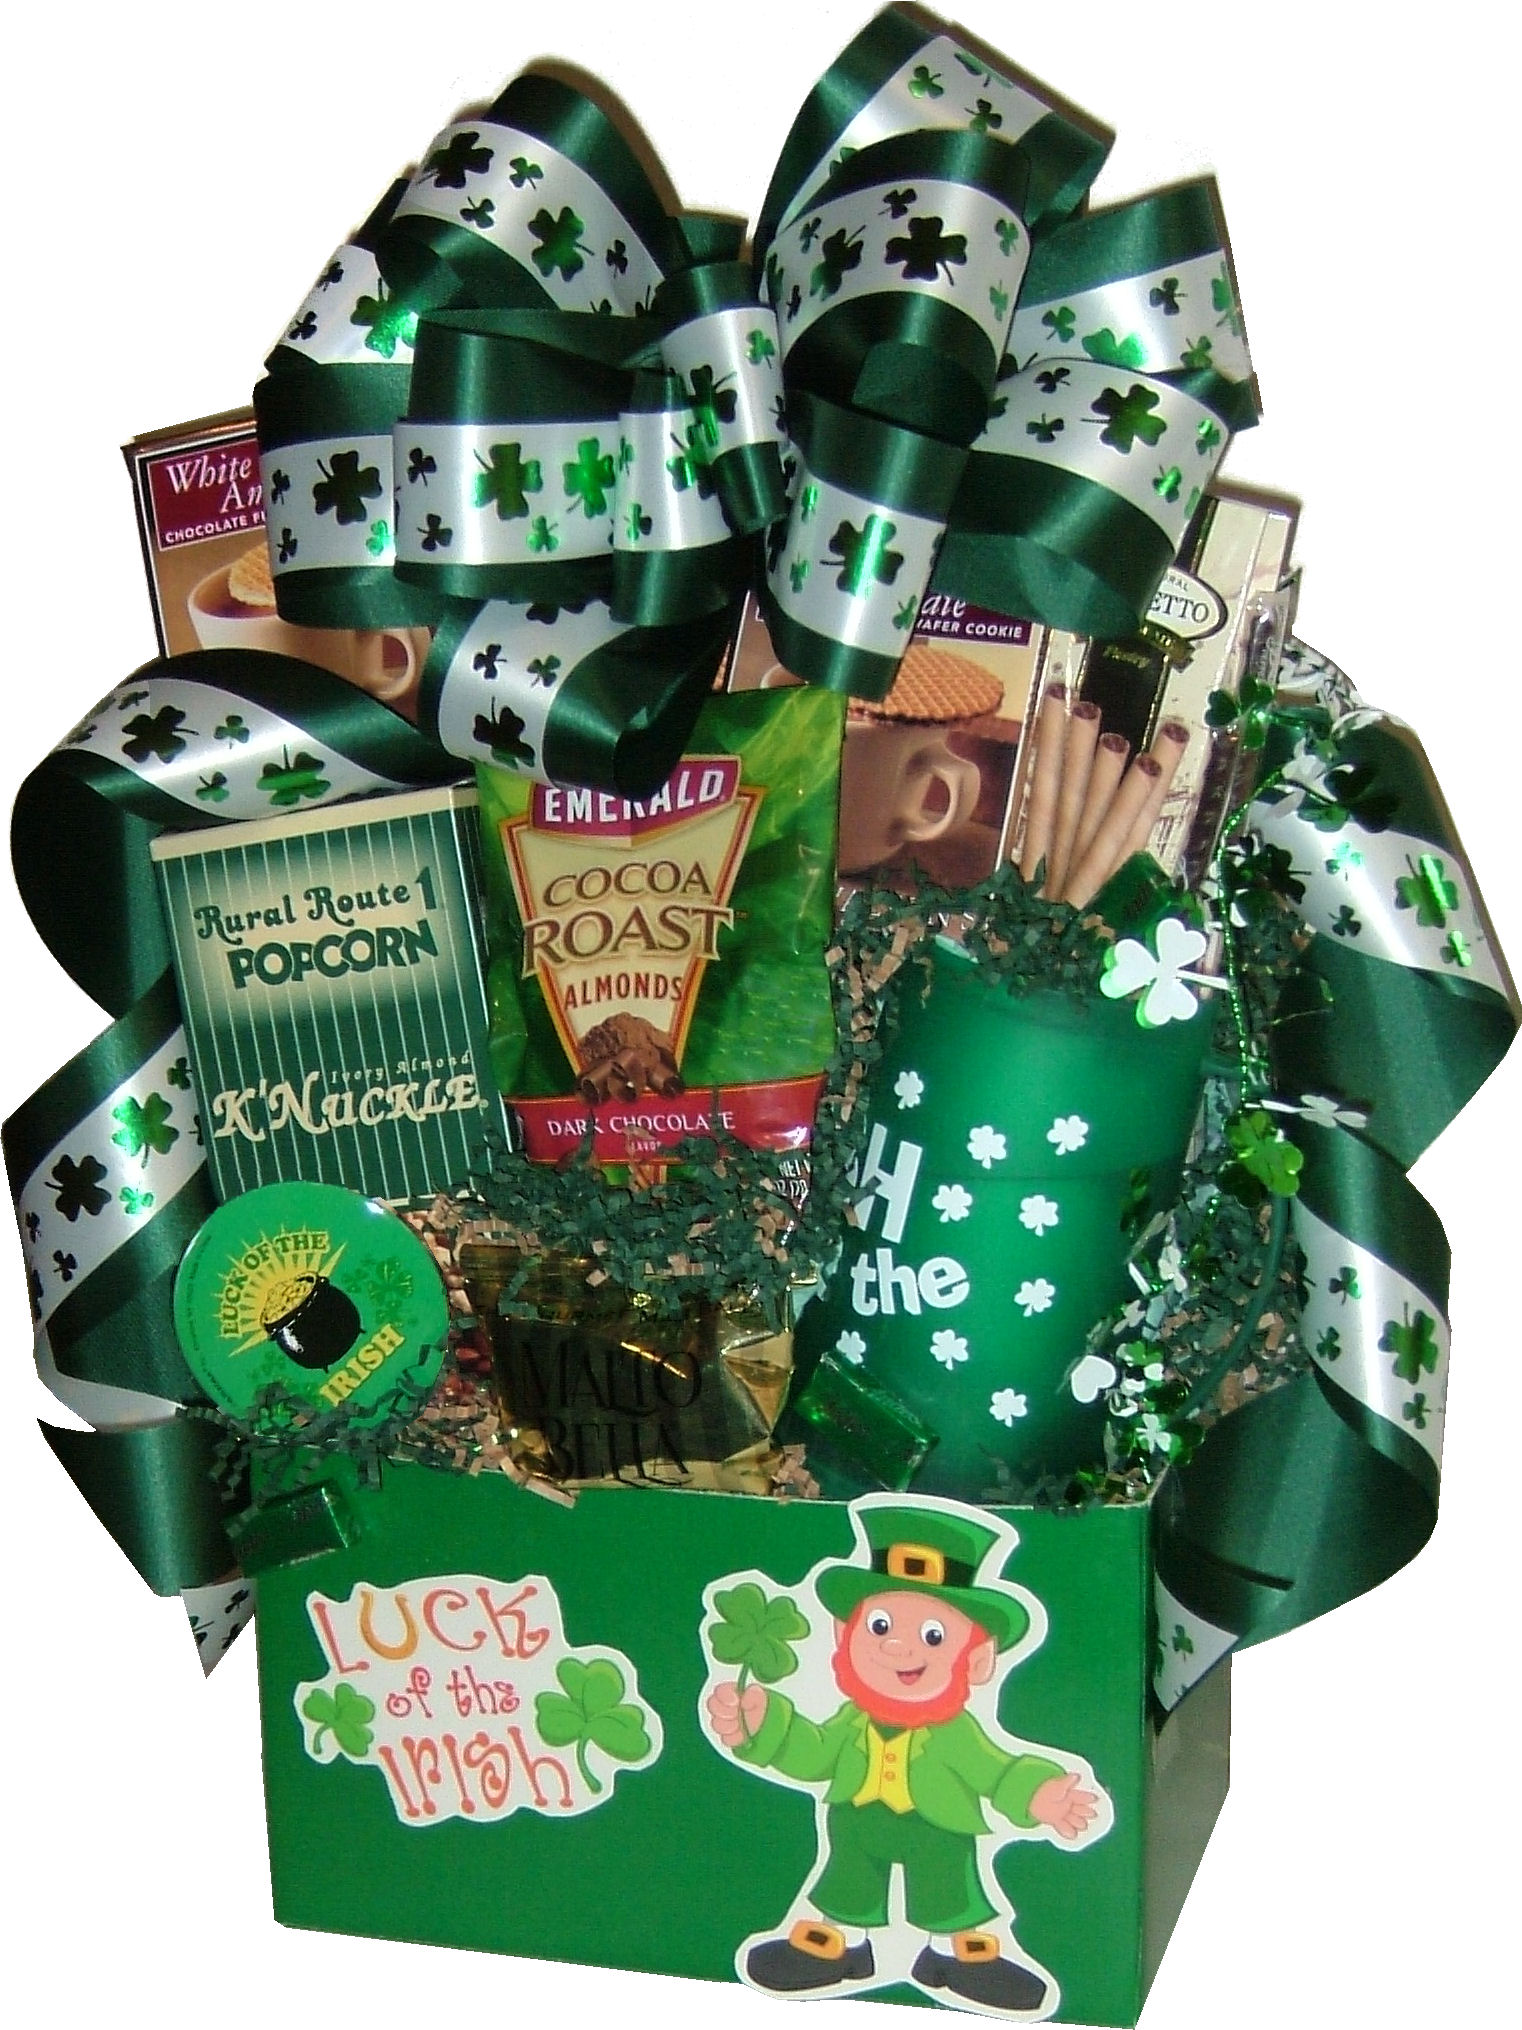 Lucky You\'re My Client! Gift Baskets | San Diego Gift Basket Creations